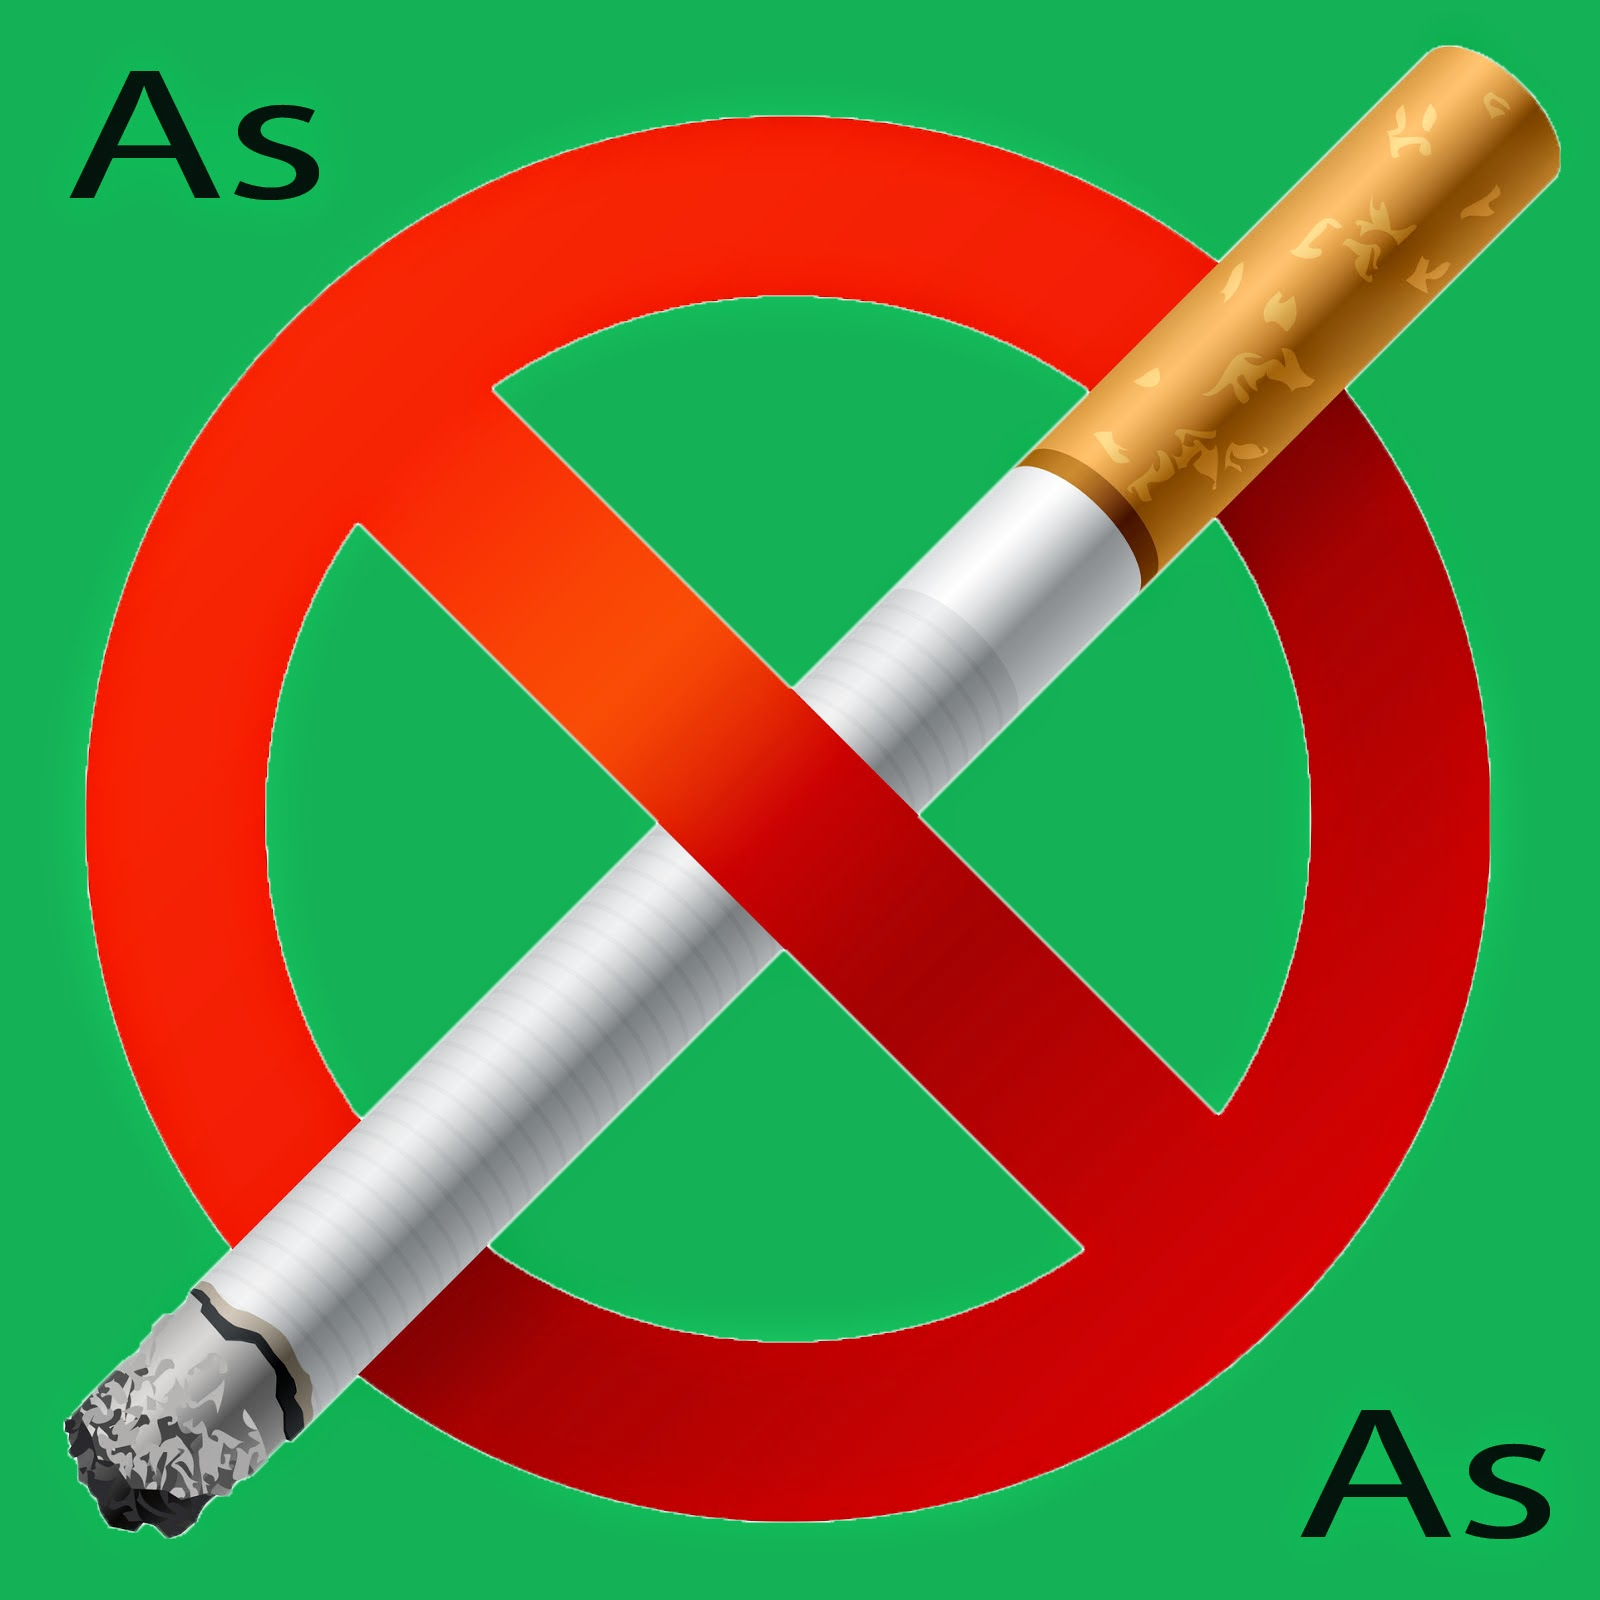 stop smoking for health